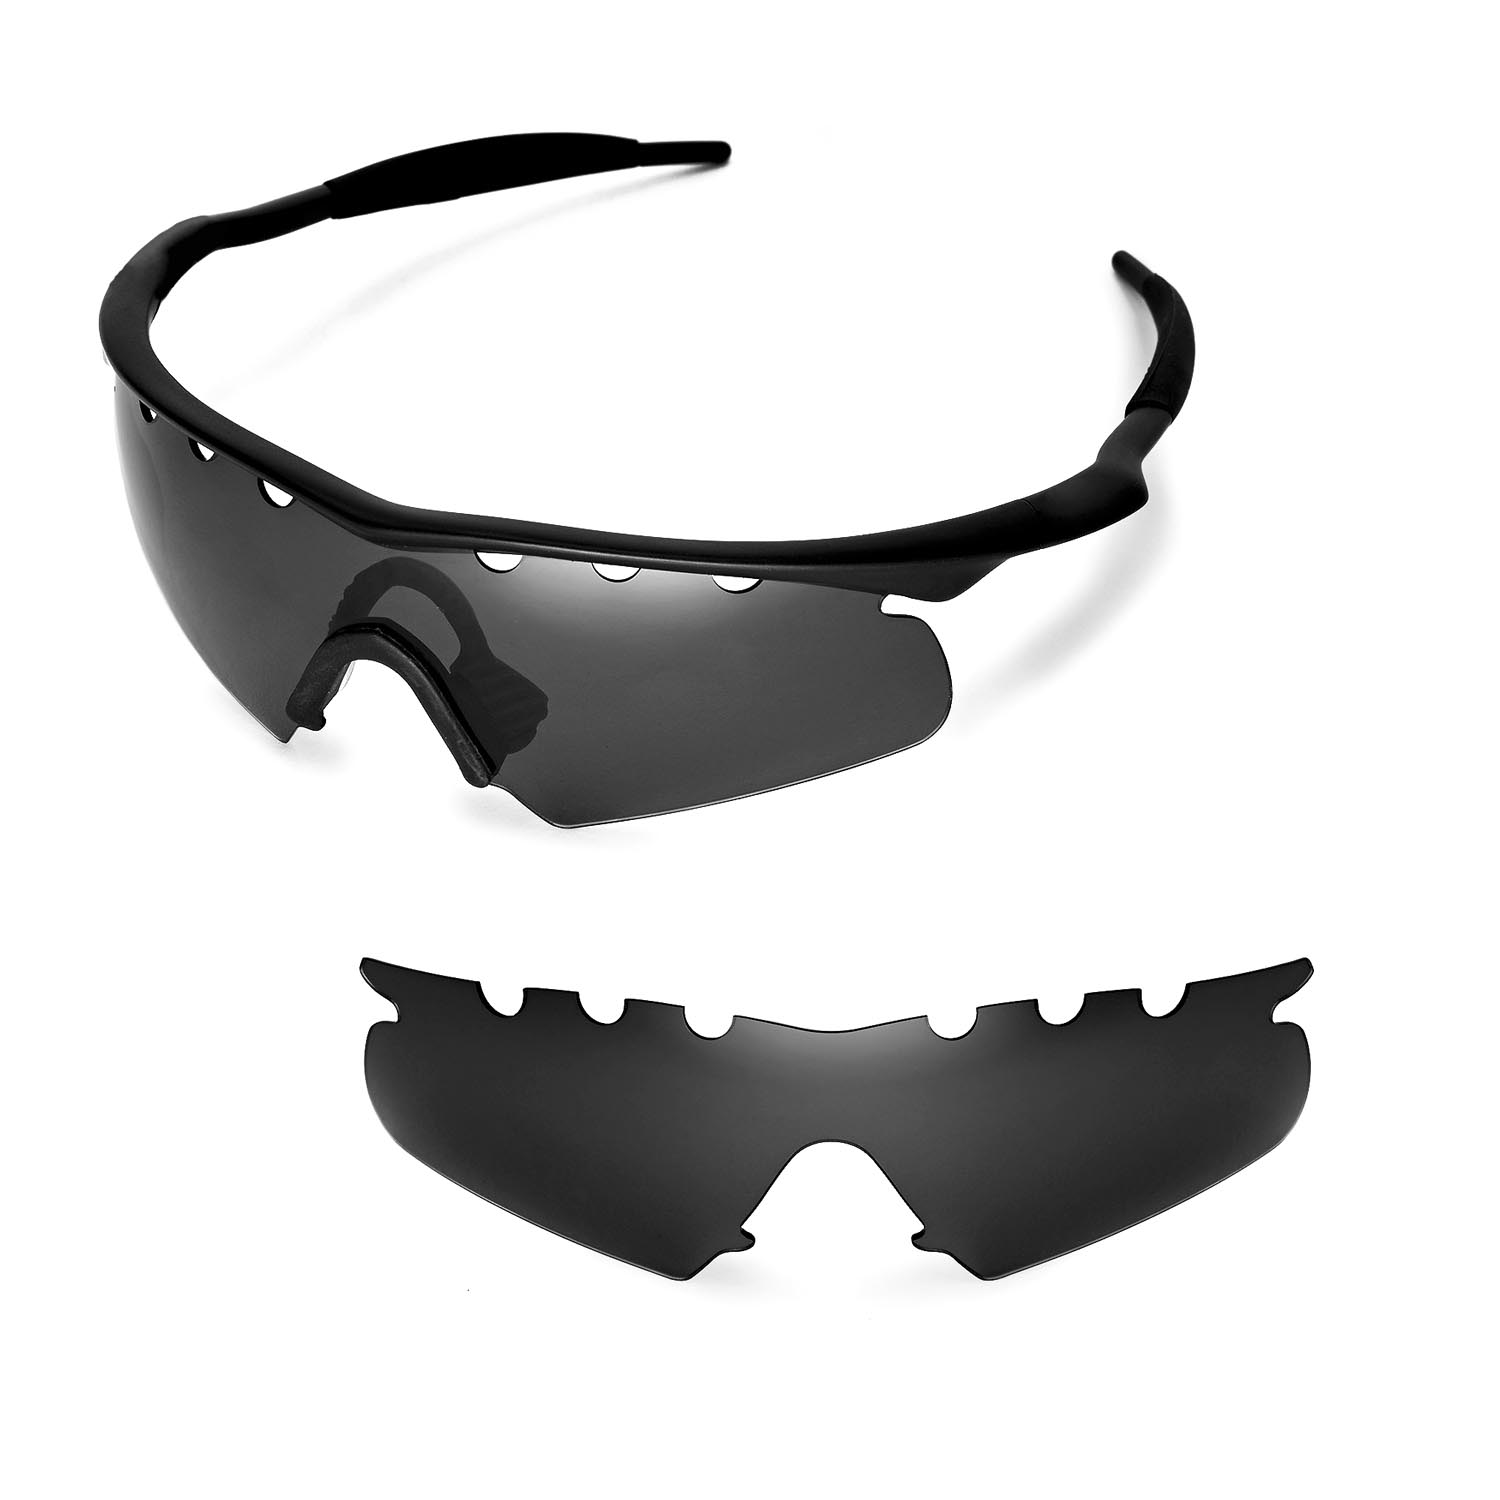 New WL Polarized Black Vented Replacement Lenses for Oakley M Frame ...